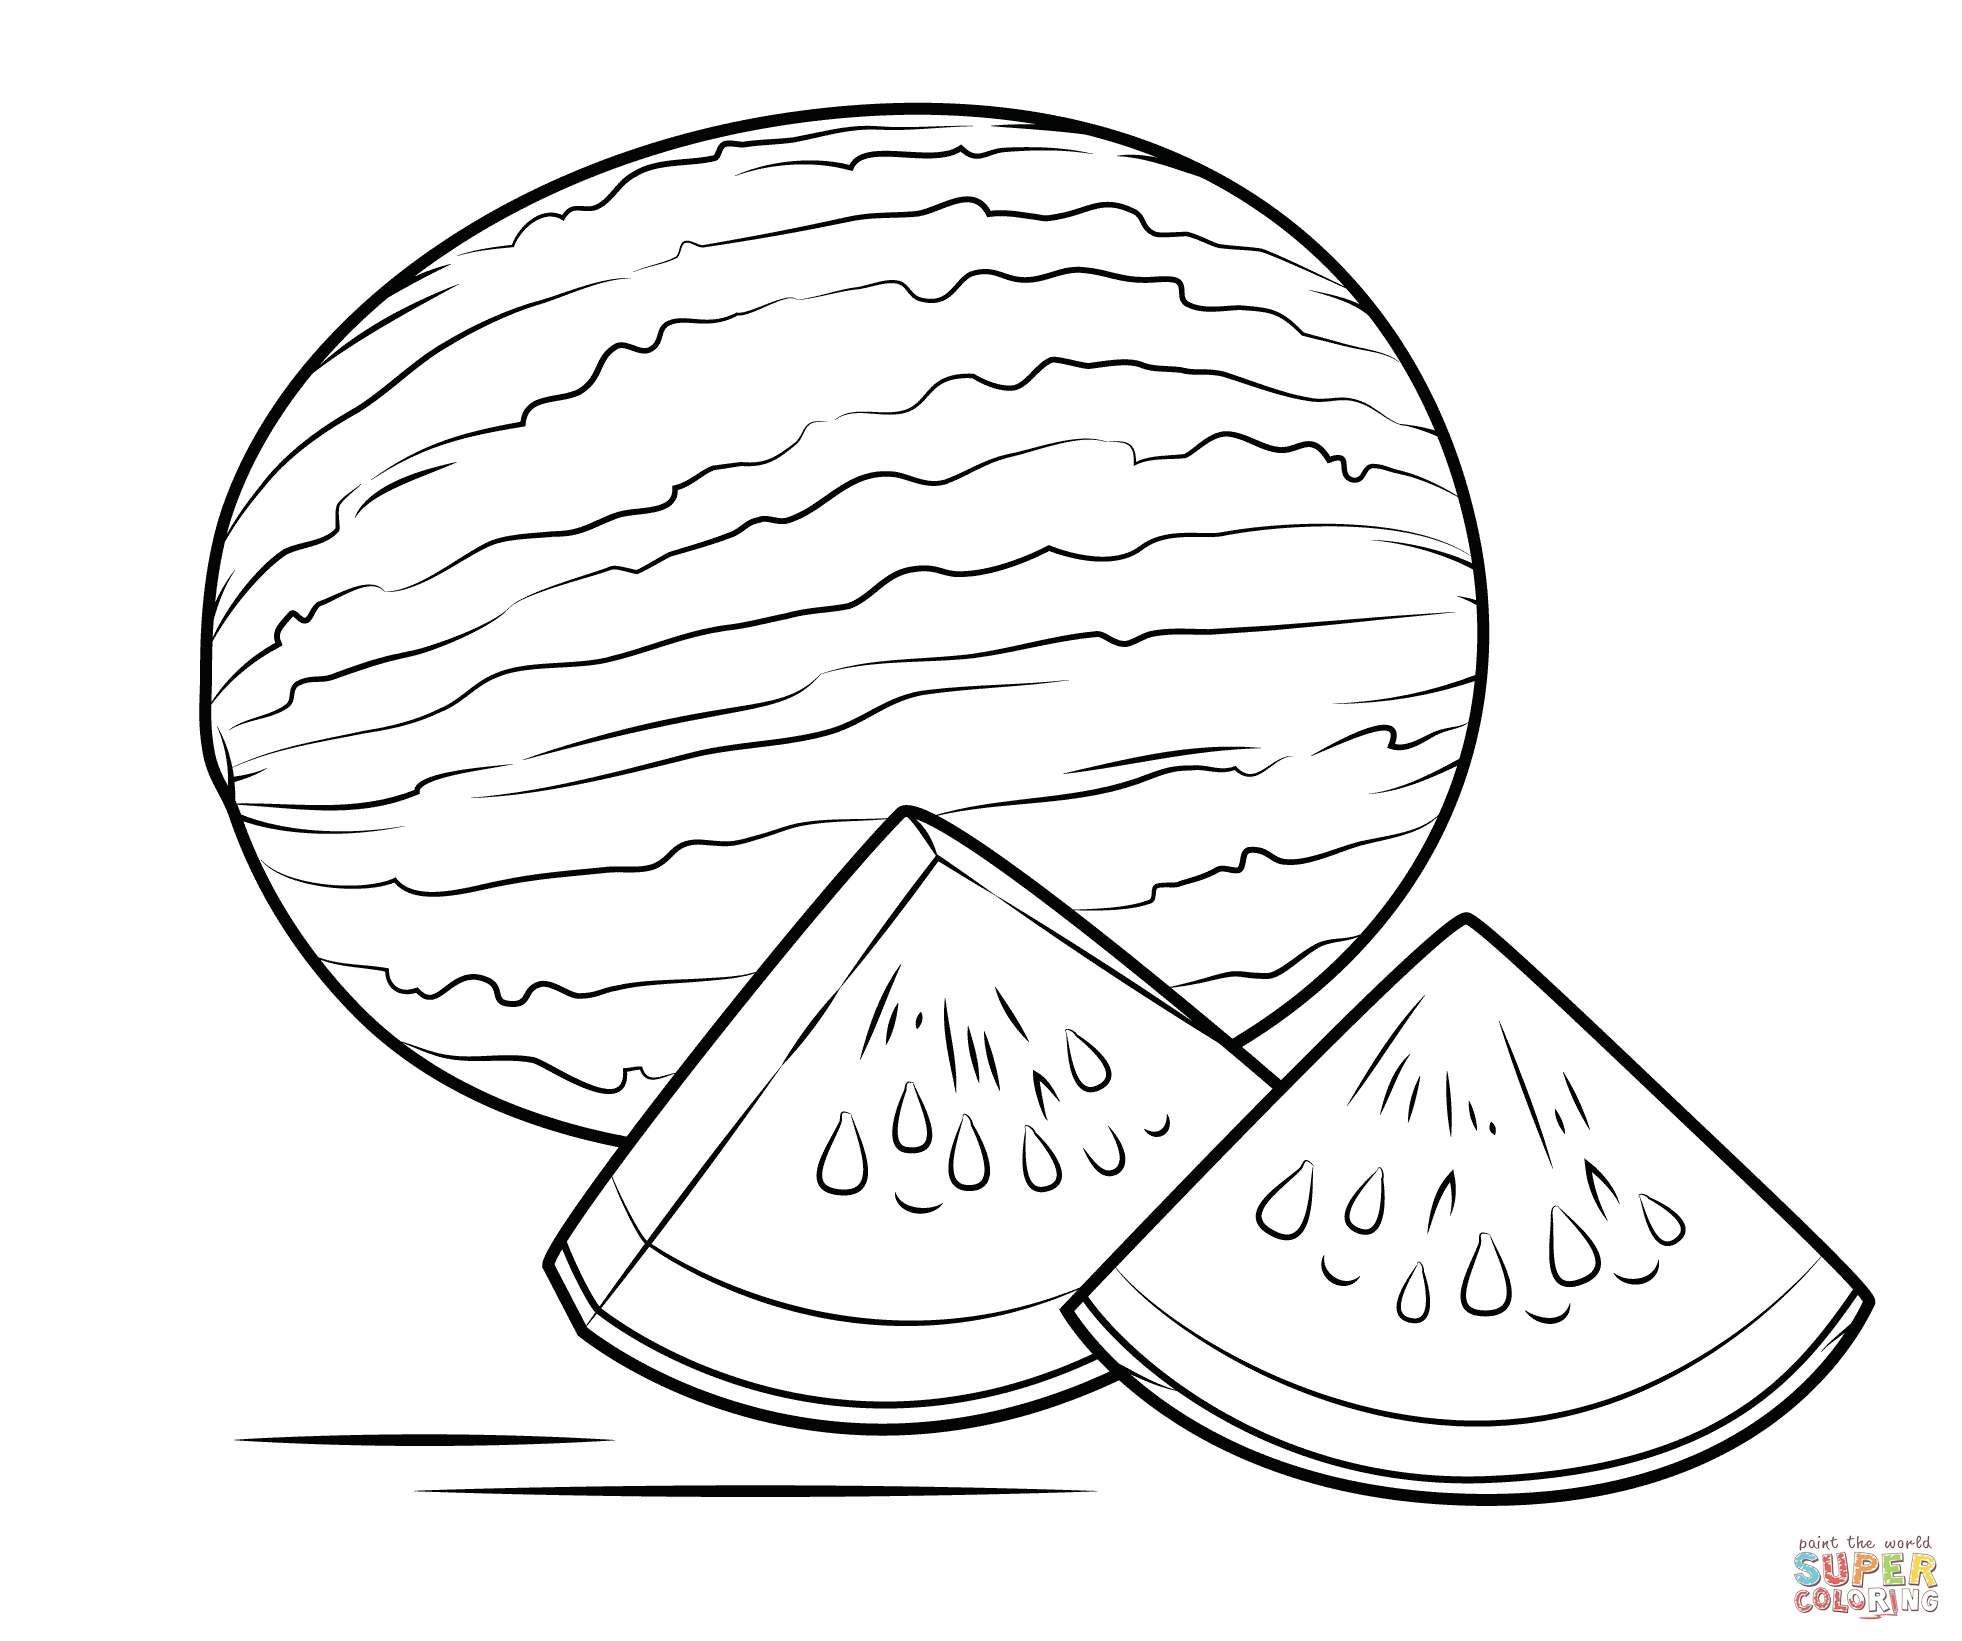 watermelon coloring pages watermelon coloring page free printable coloring pages pages watermelon coloring